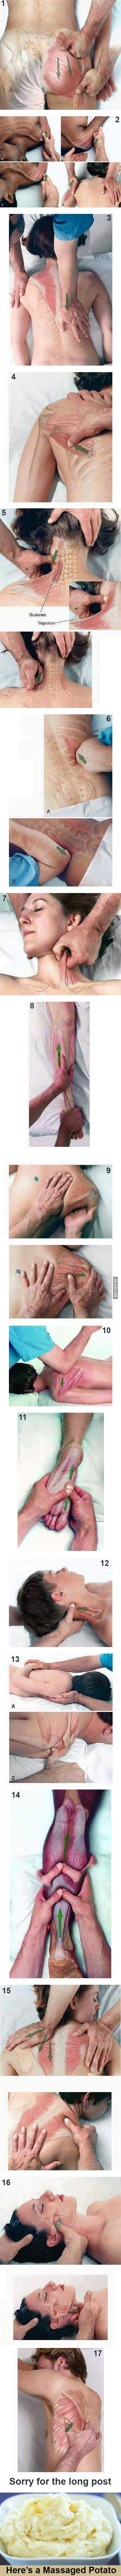 How to give a great massage - 9GAG